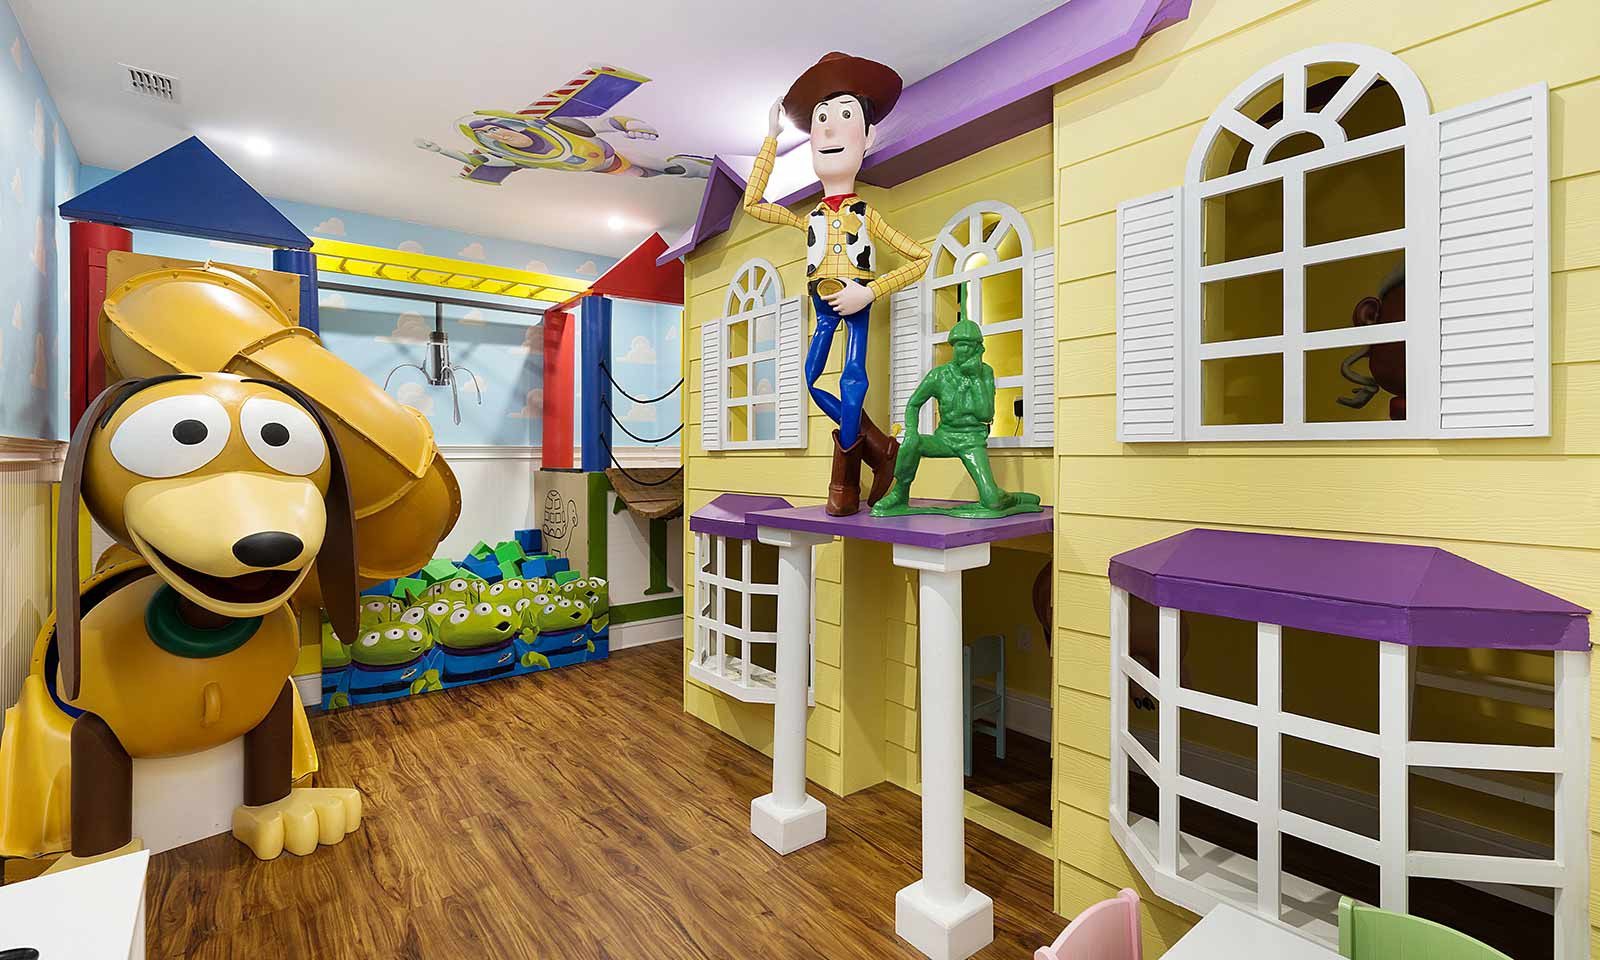 [amenities:Indoor-Playground:2] Indoor Playground